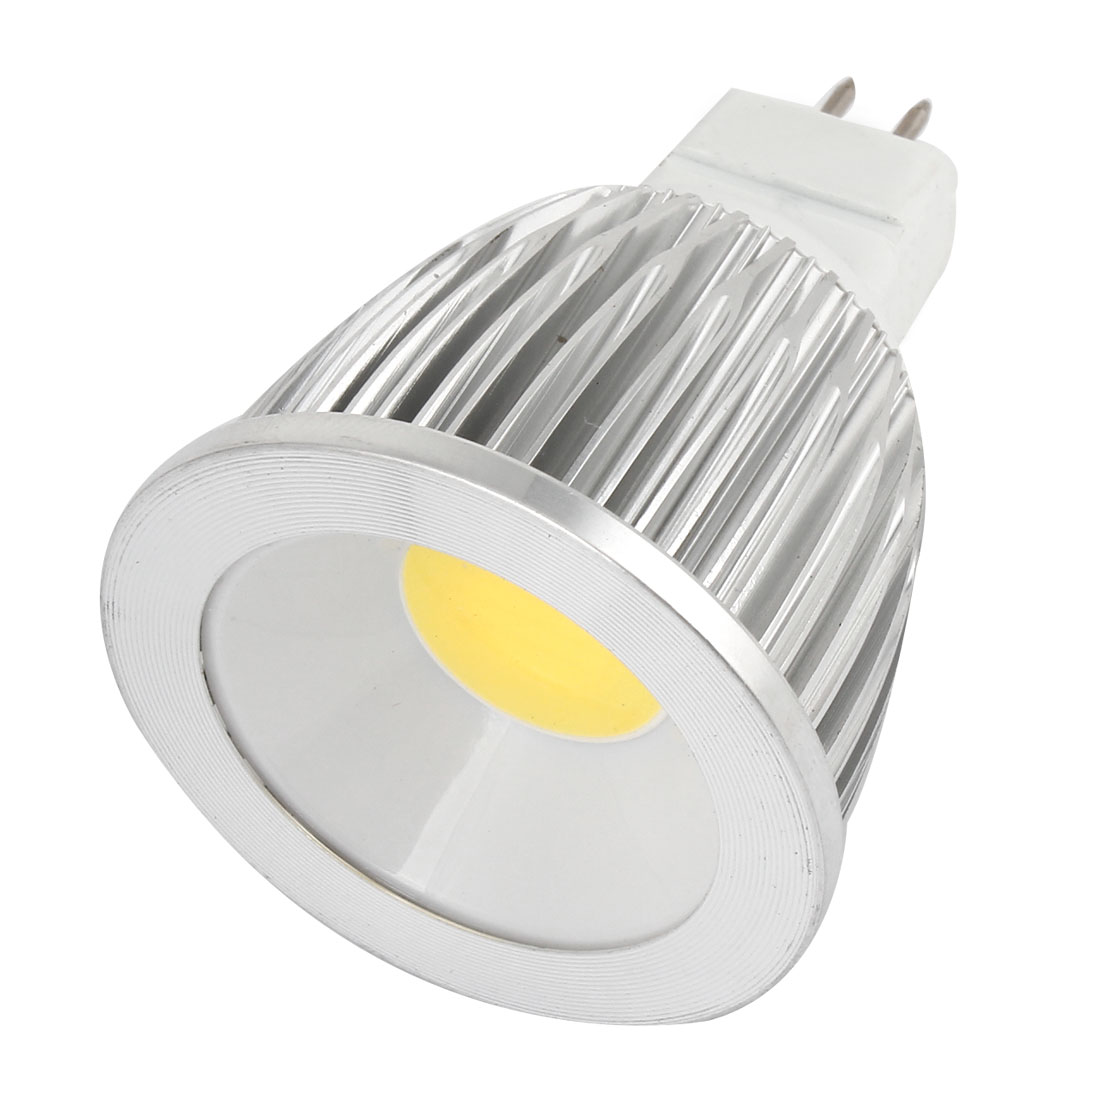 AC 12V 9W MR16 Metal Shell Non-dimmable White Light COB LED Downlight Spotlight